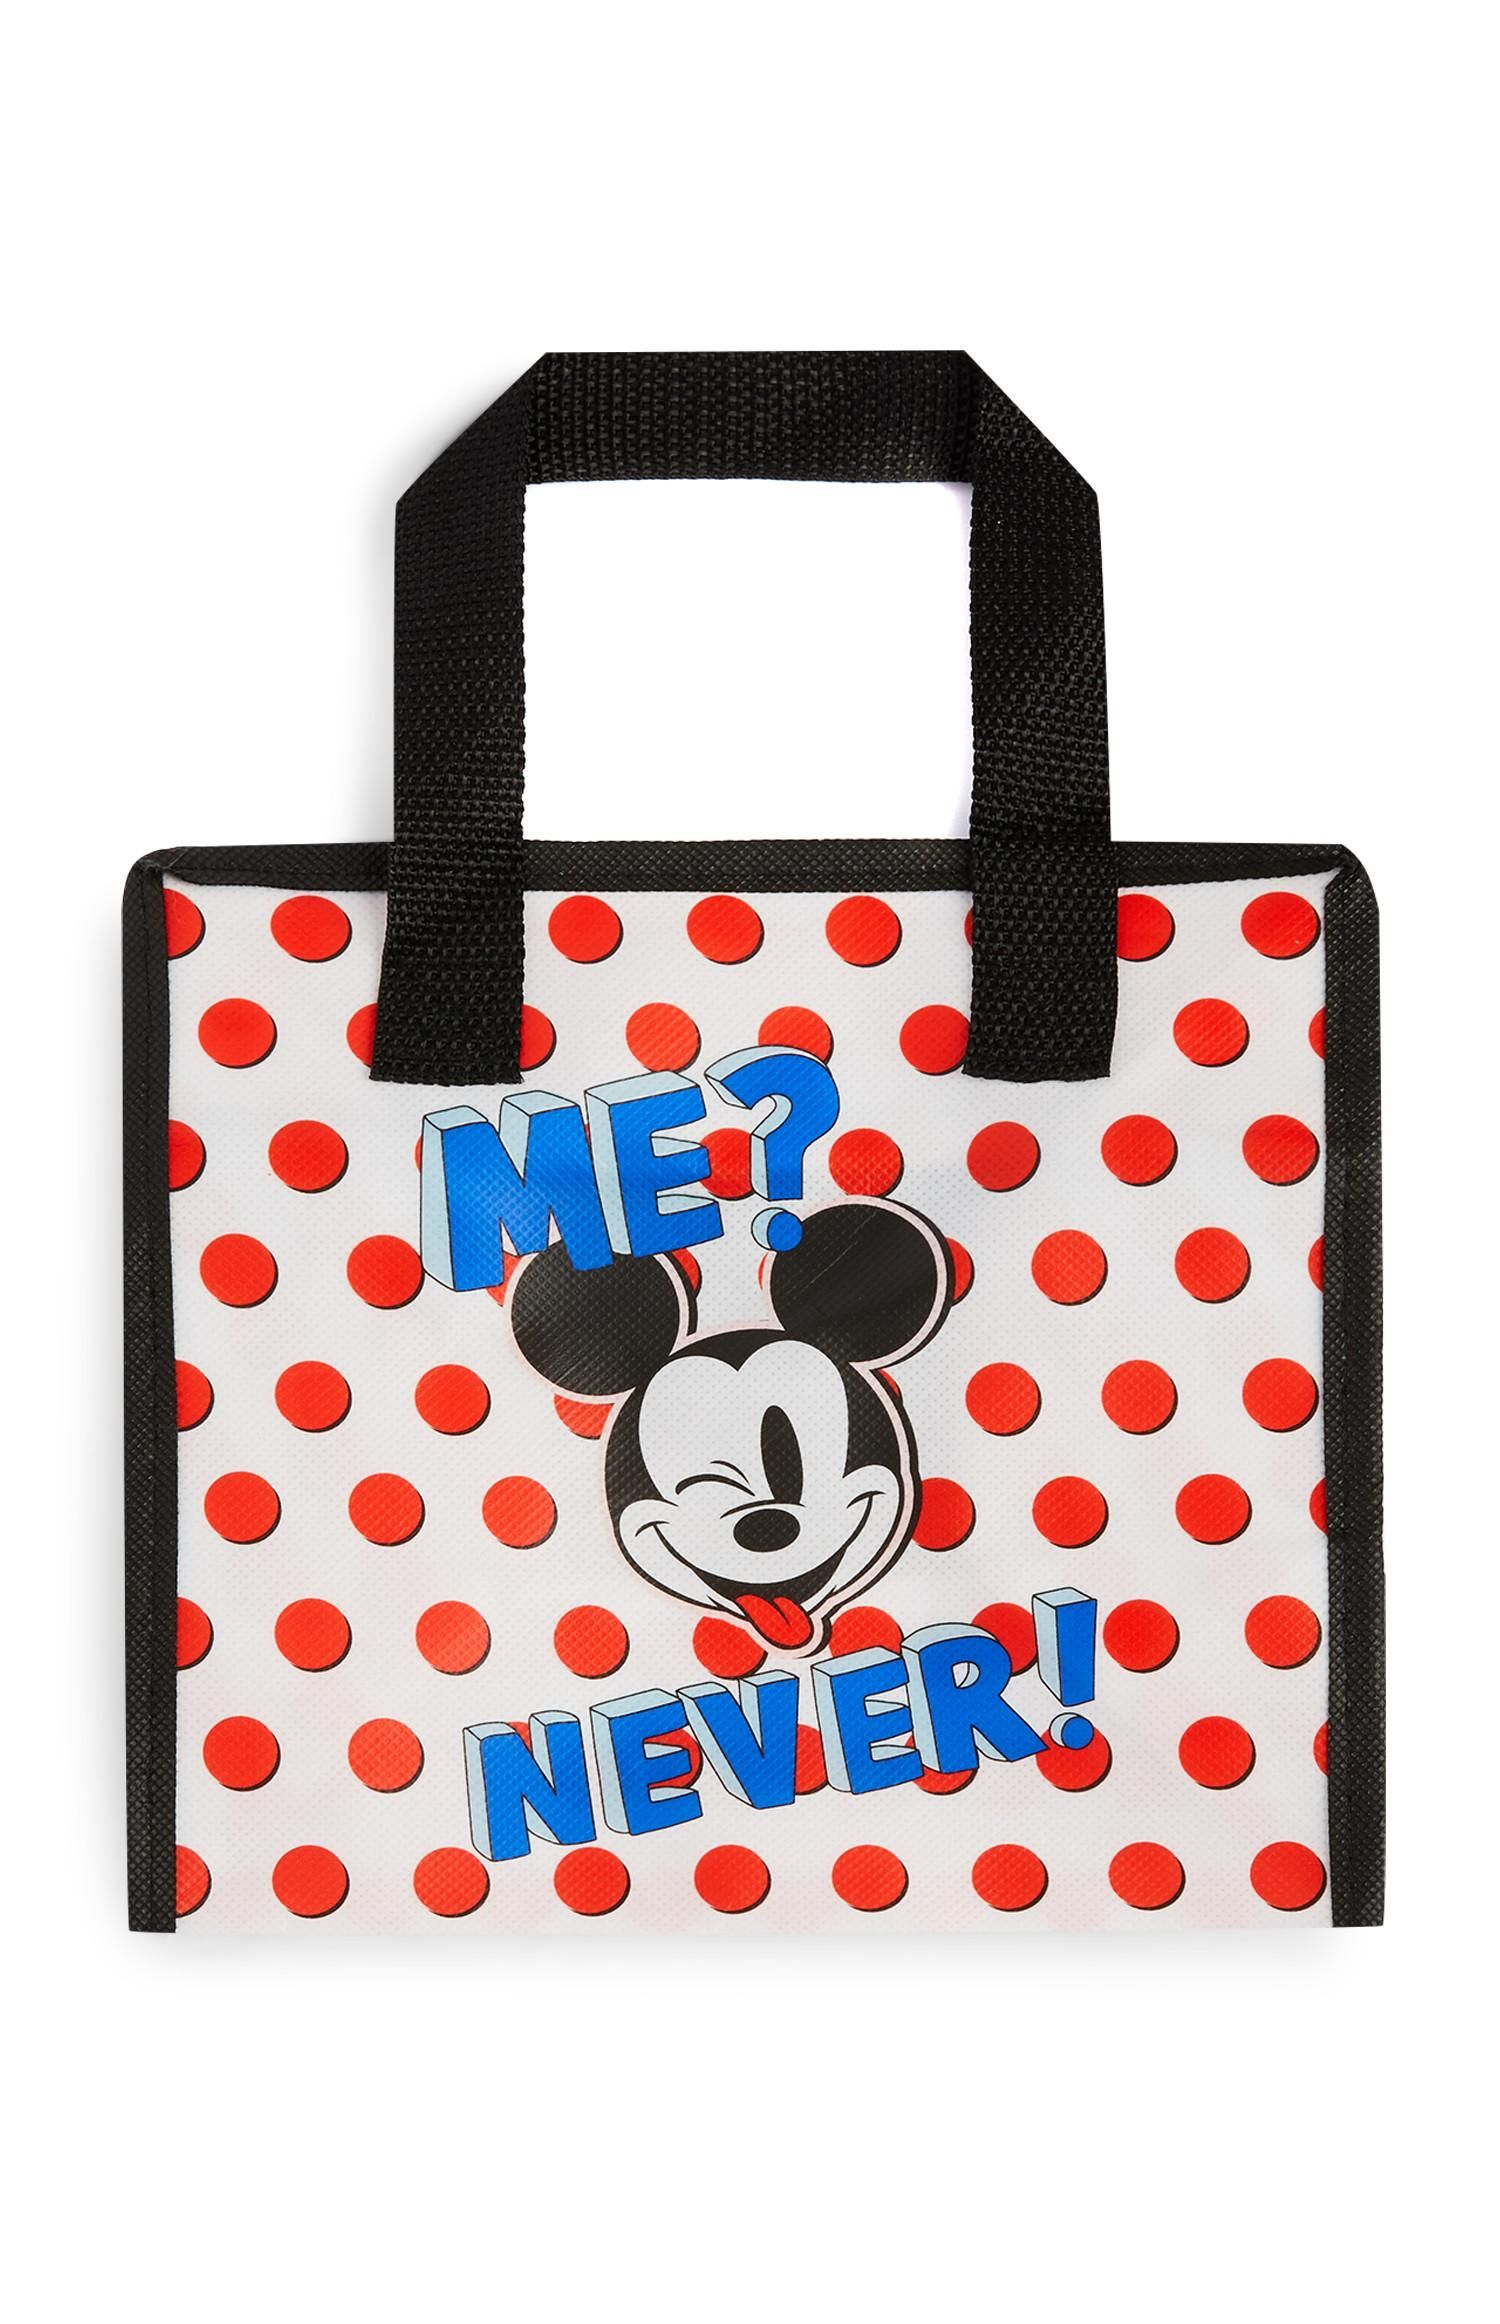 Pin By Maria Janicka On Accessories In 2020 Girls Shoes Kids Mickey Mouse Lunch Bag Women Accessories Bags